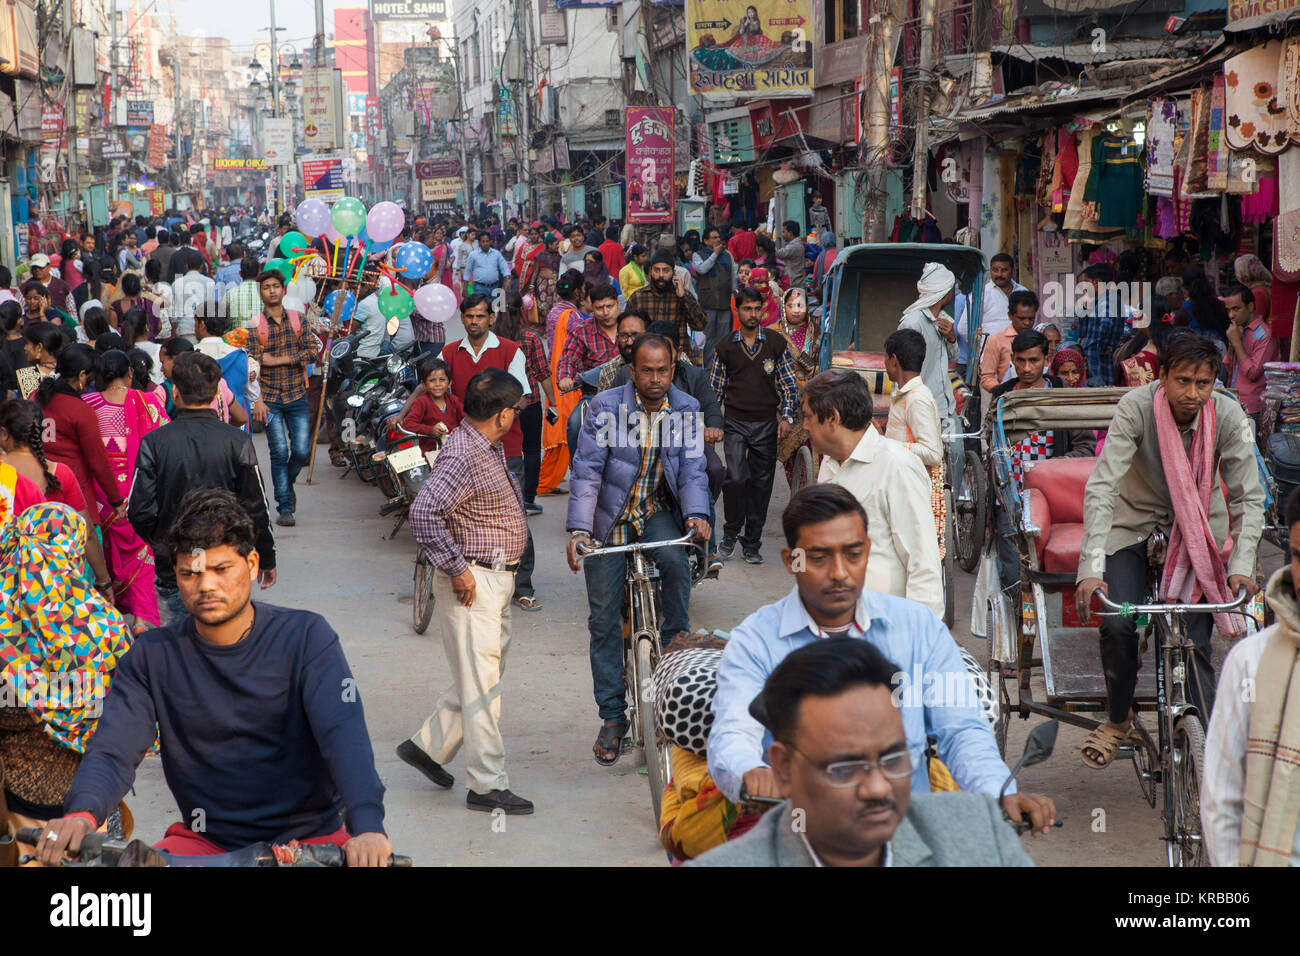 Traffic and pedestrians in a busy and congested Dasashwamedha Ghat Road in Varanasi, Uttar Pradesh, India - Stock Image